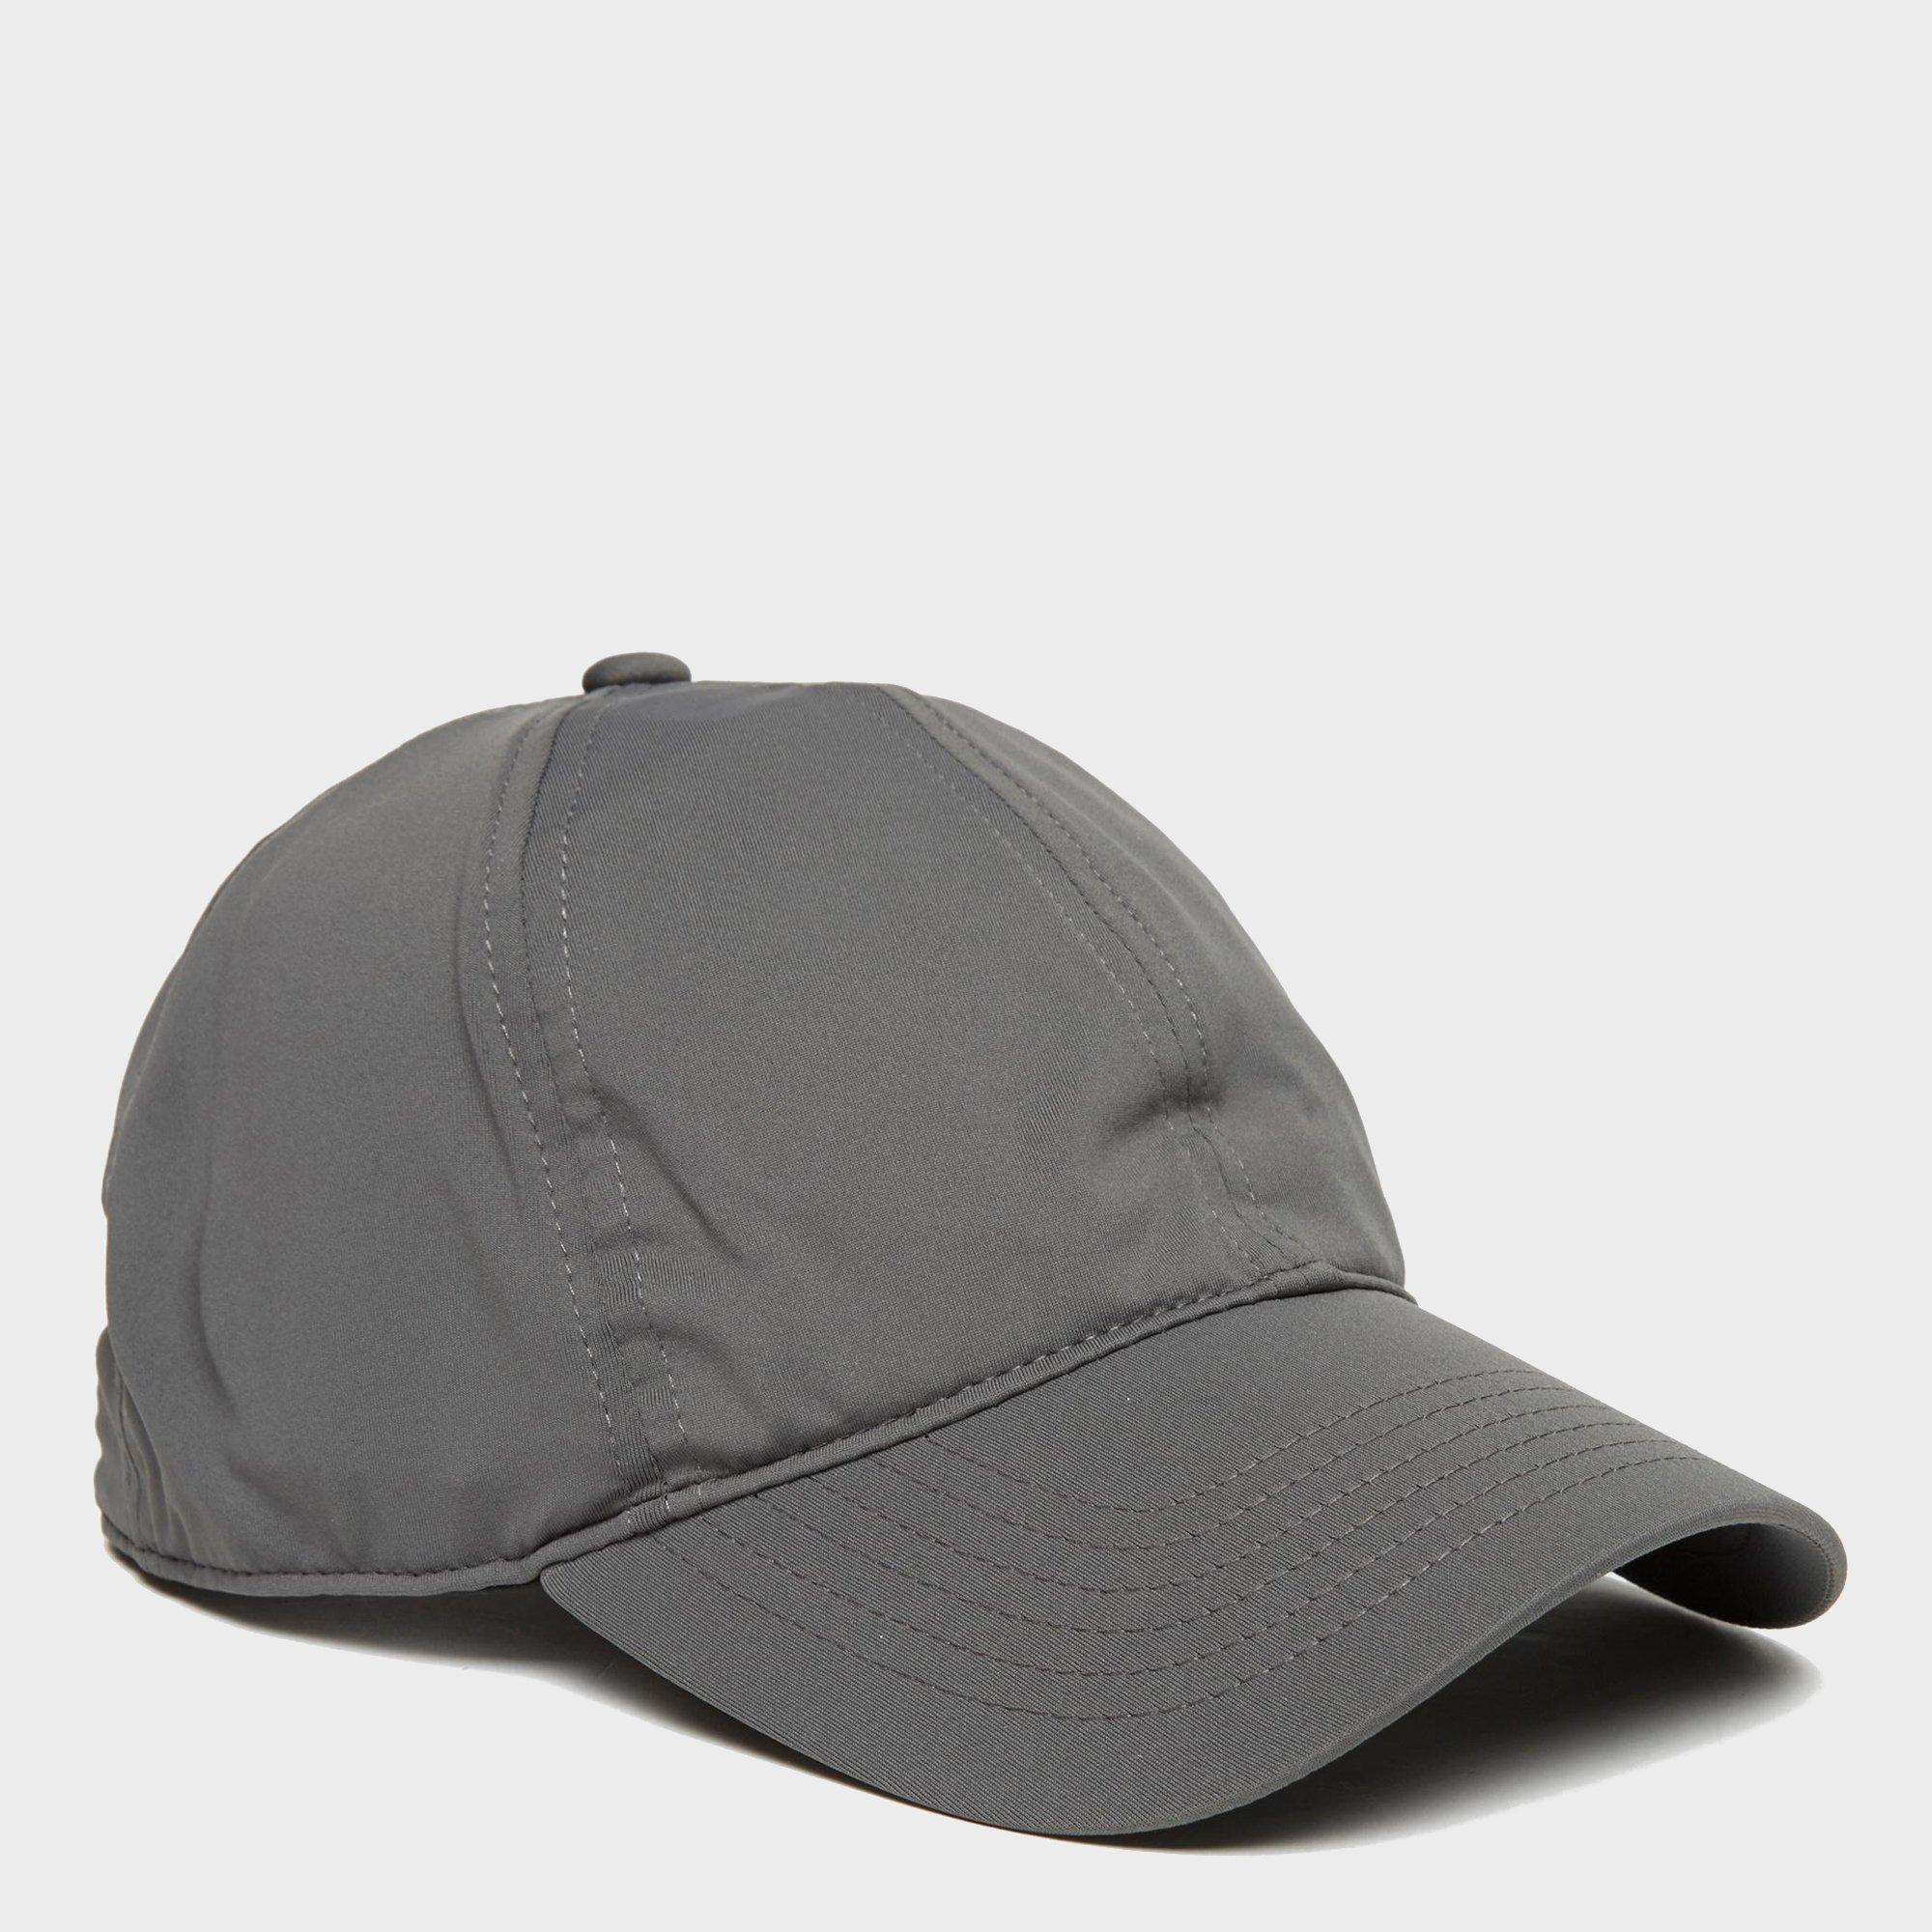 9082d3e3 Details about New Columbia Men's Coolhead Ball Cap Outdoor Accessories